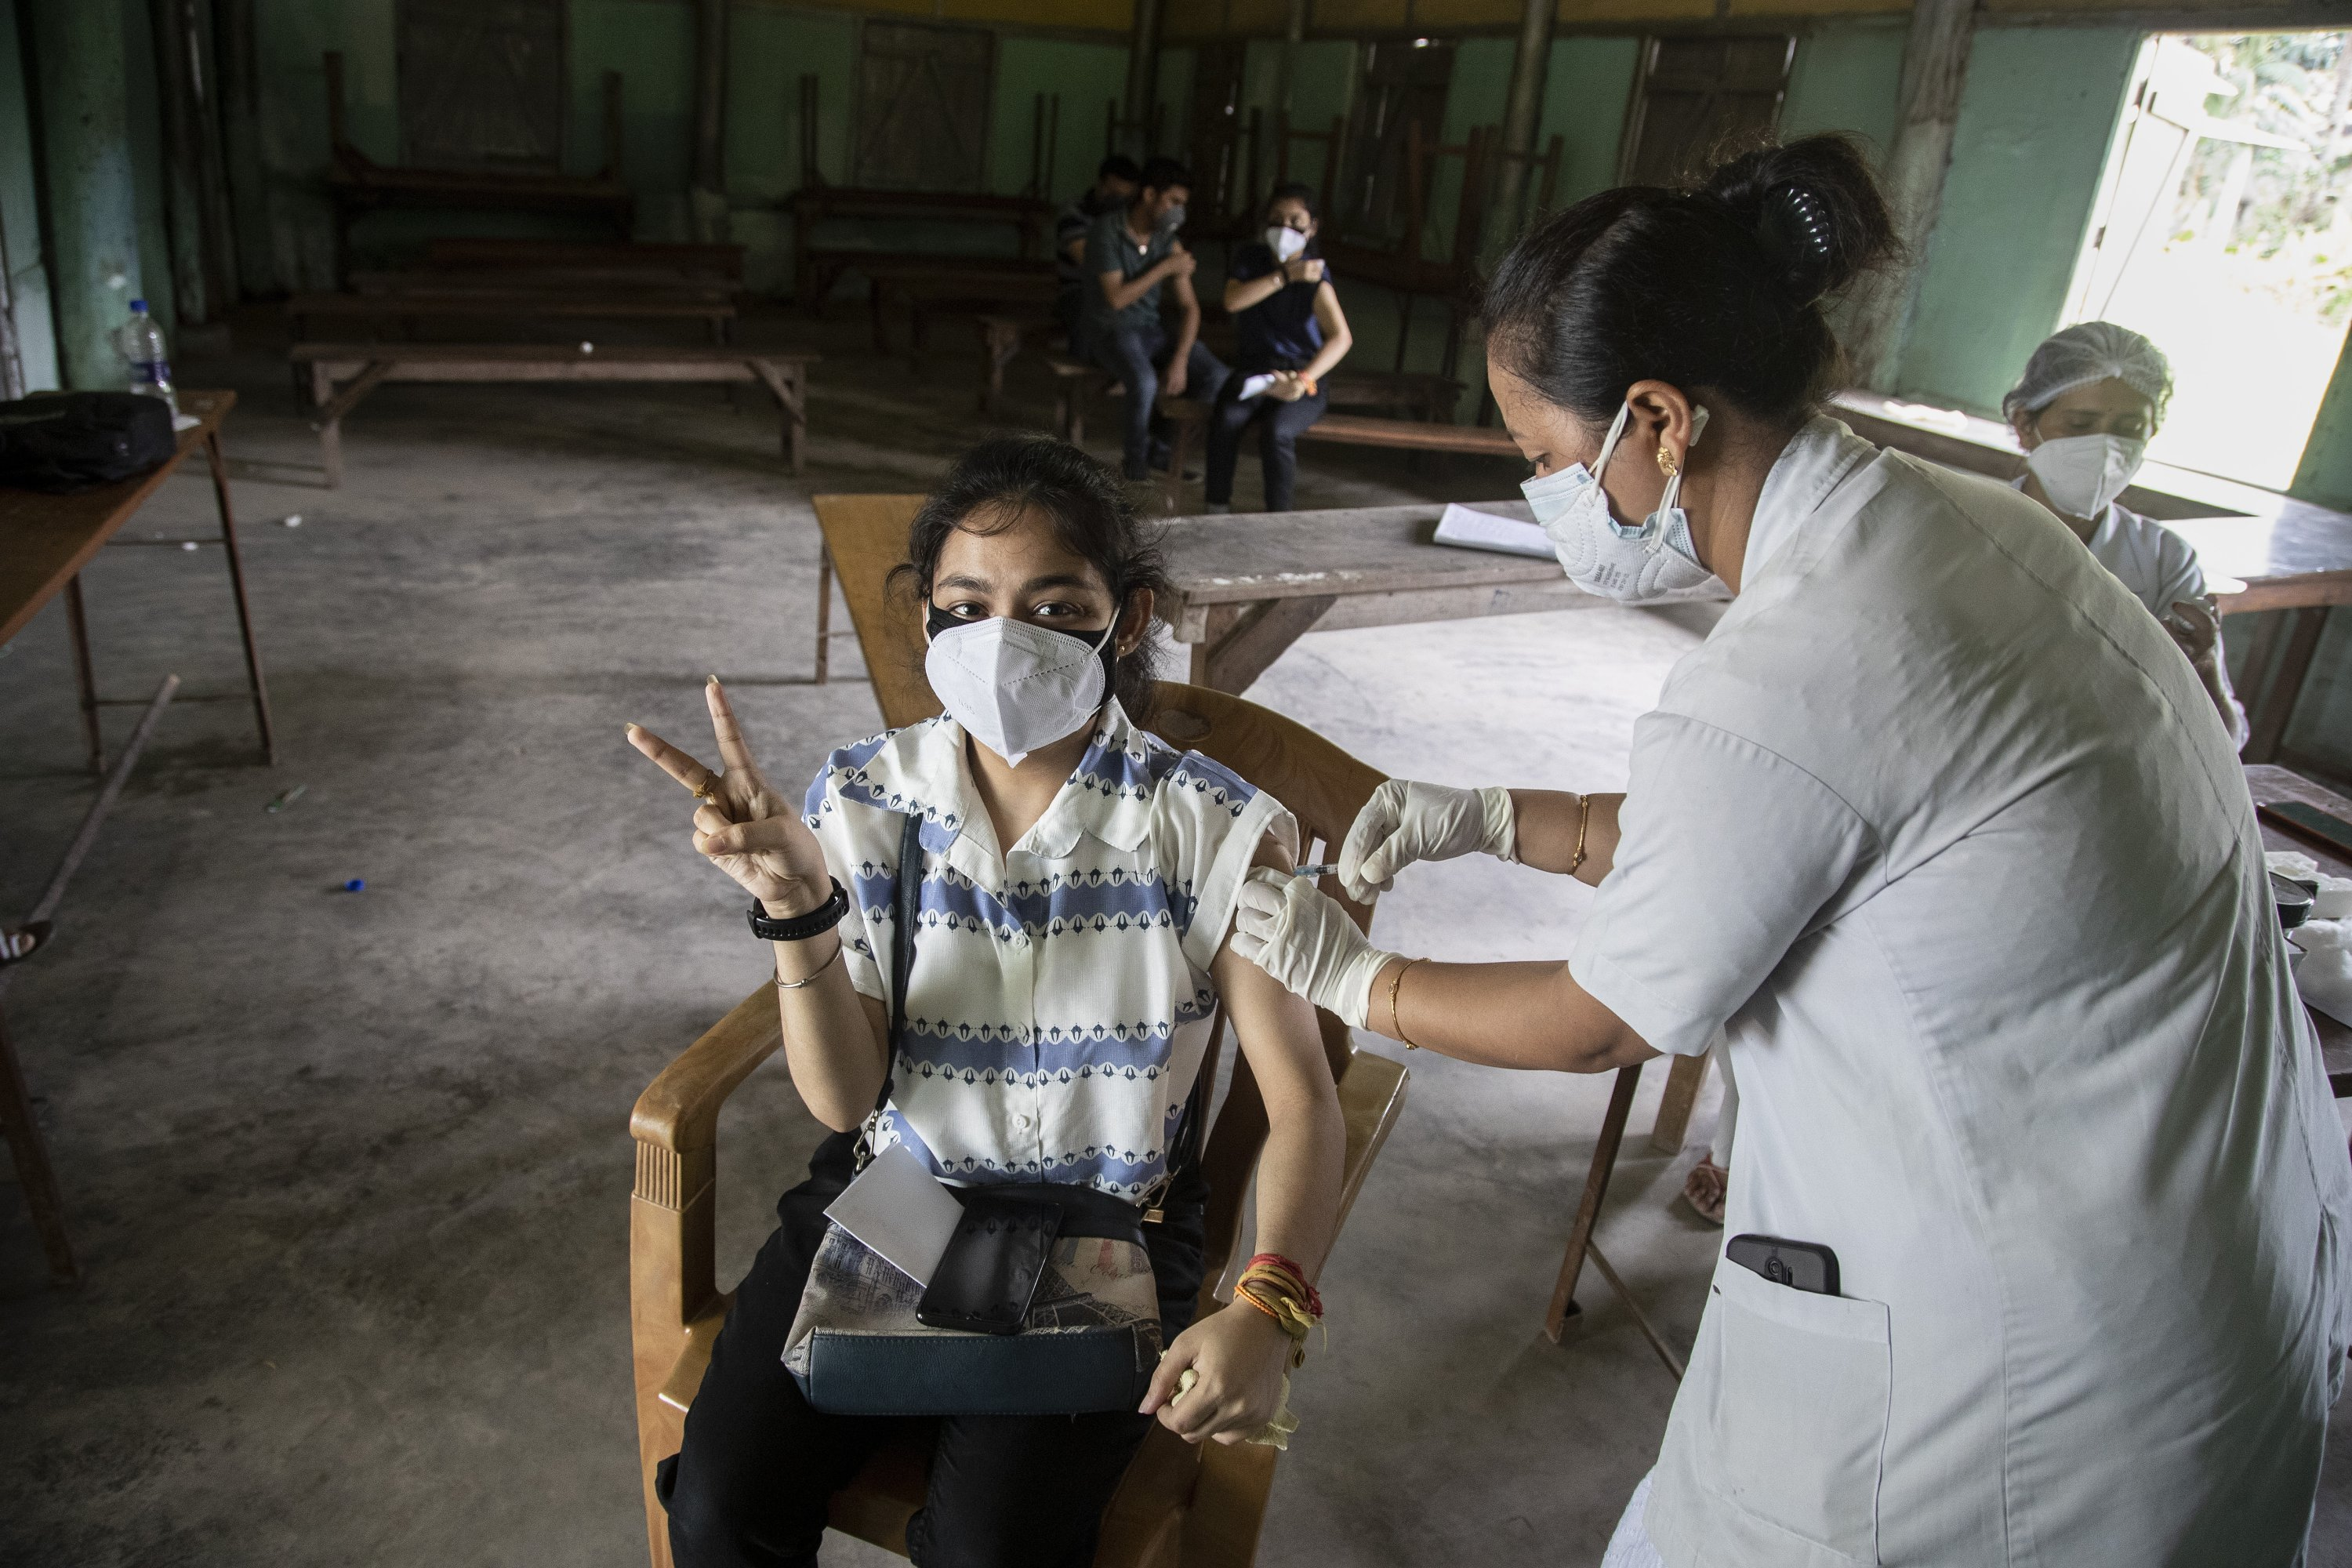 An Indian woman getting vaccinated with a dose of COVAXIN against the coronavirus gestures to the camera in Gauhati, Assam, India, May 10, 2021. (AP Photo)